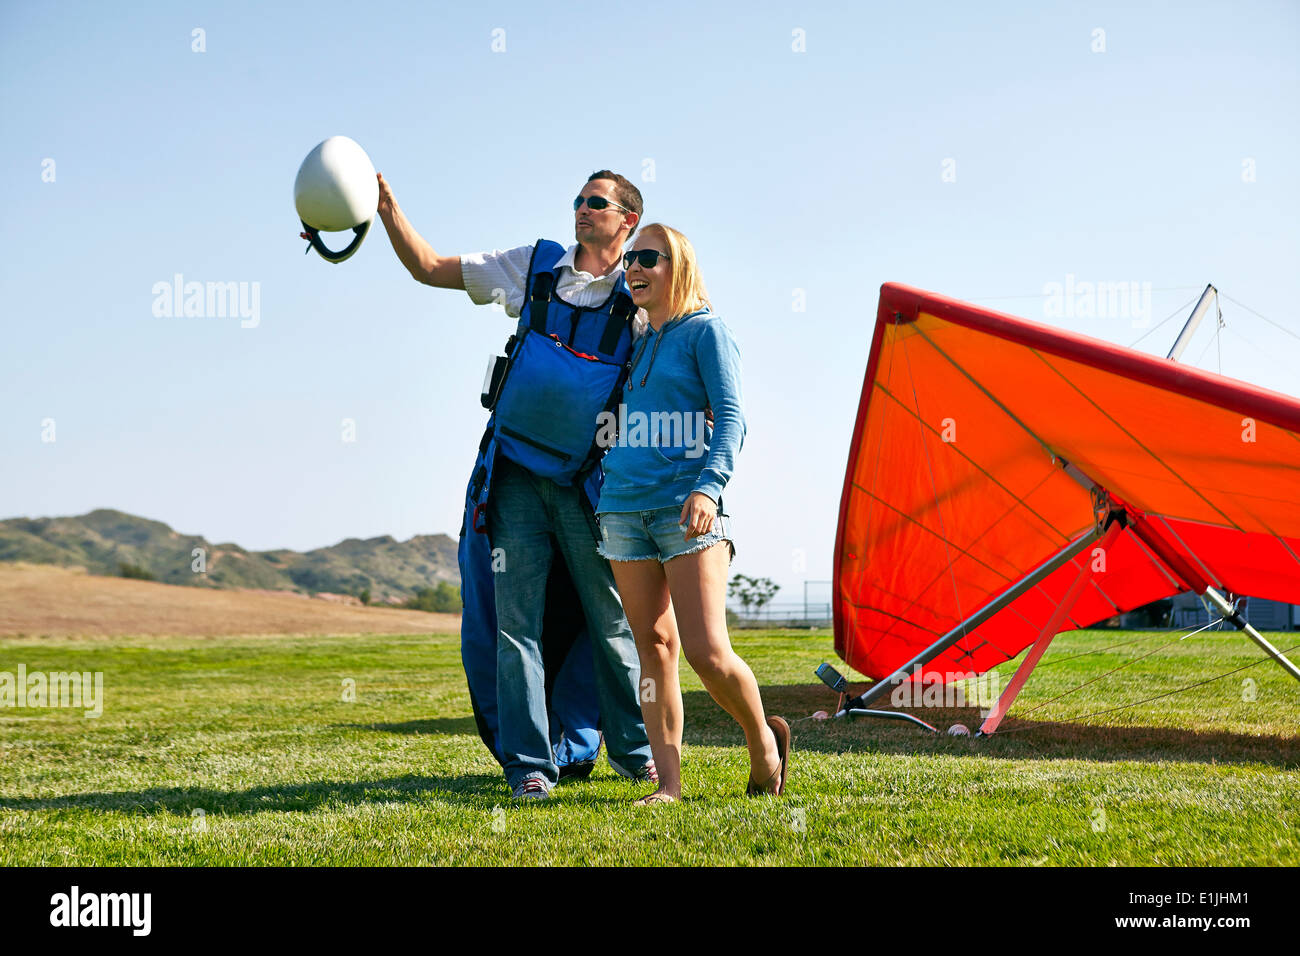 Couple enjoying view, hang glider in background - Stock Image